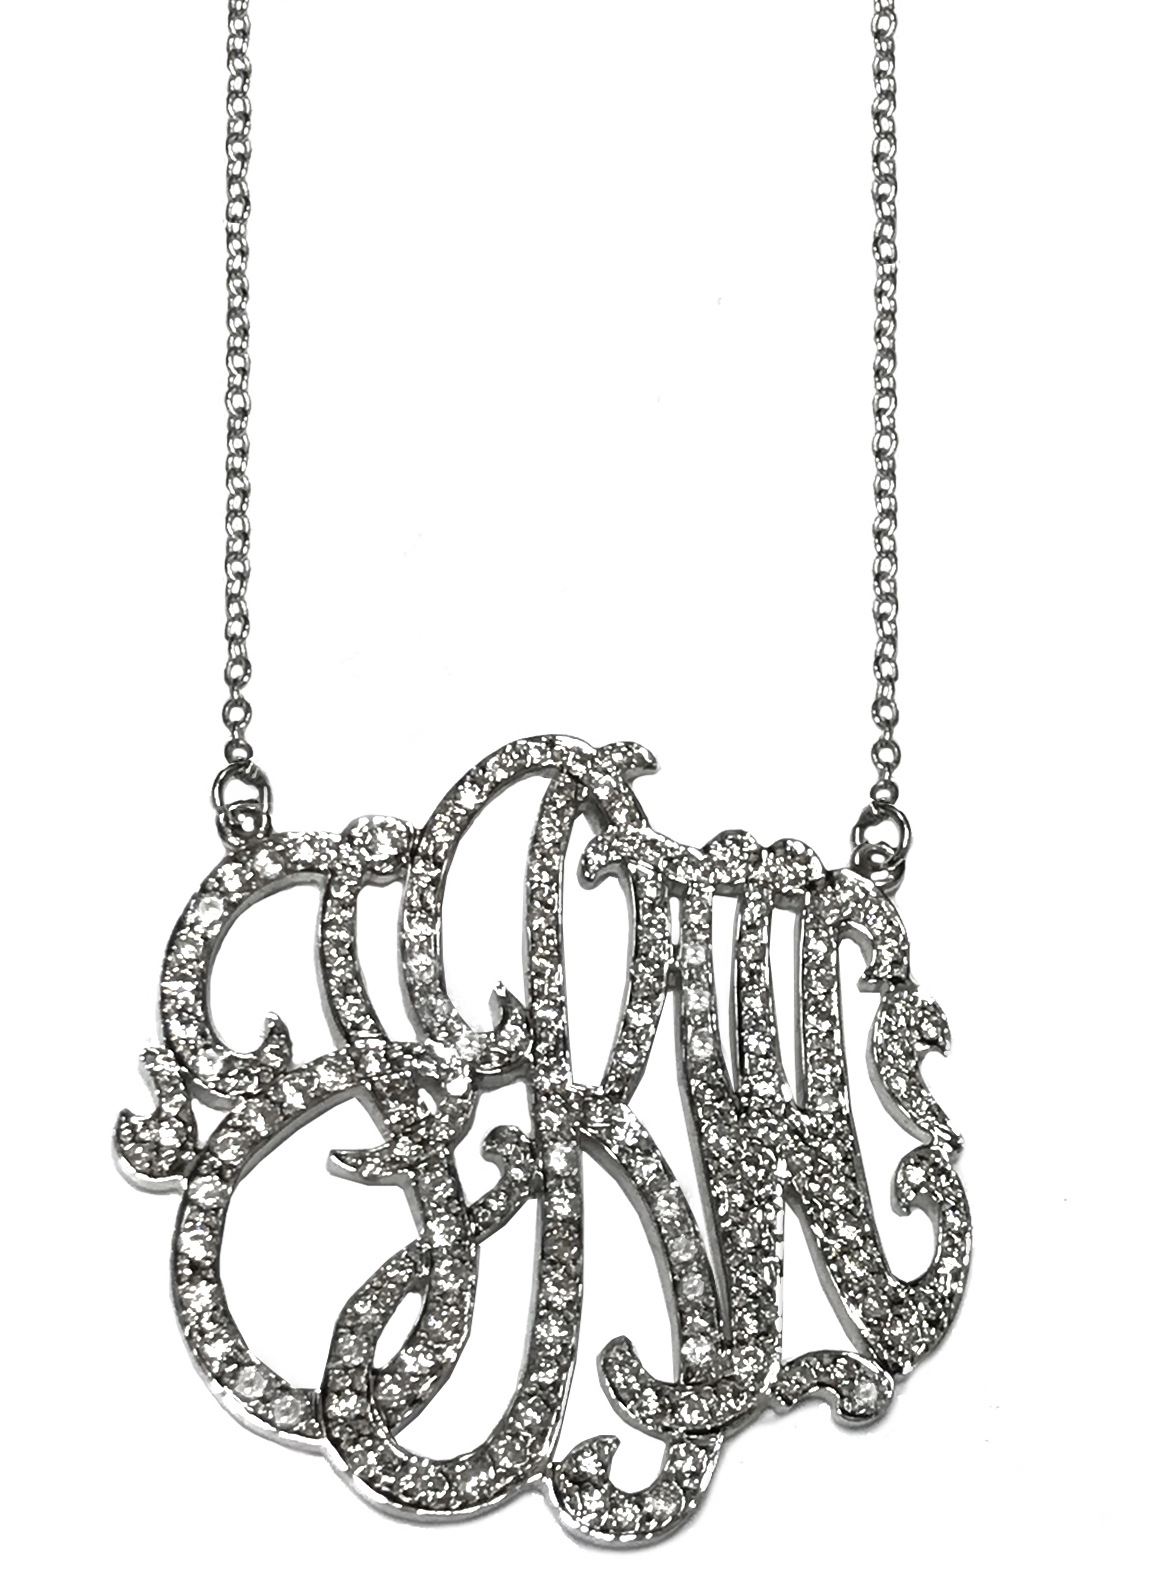 Jane Basch diamond monogram necklace | JCK On Your Market